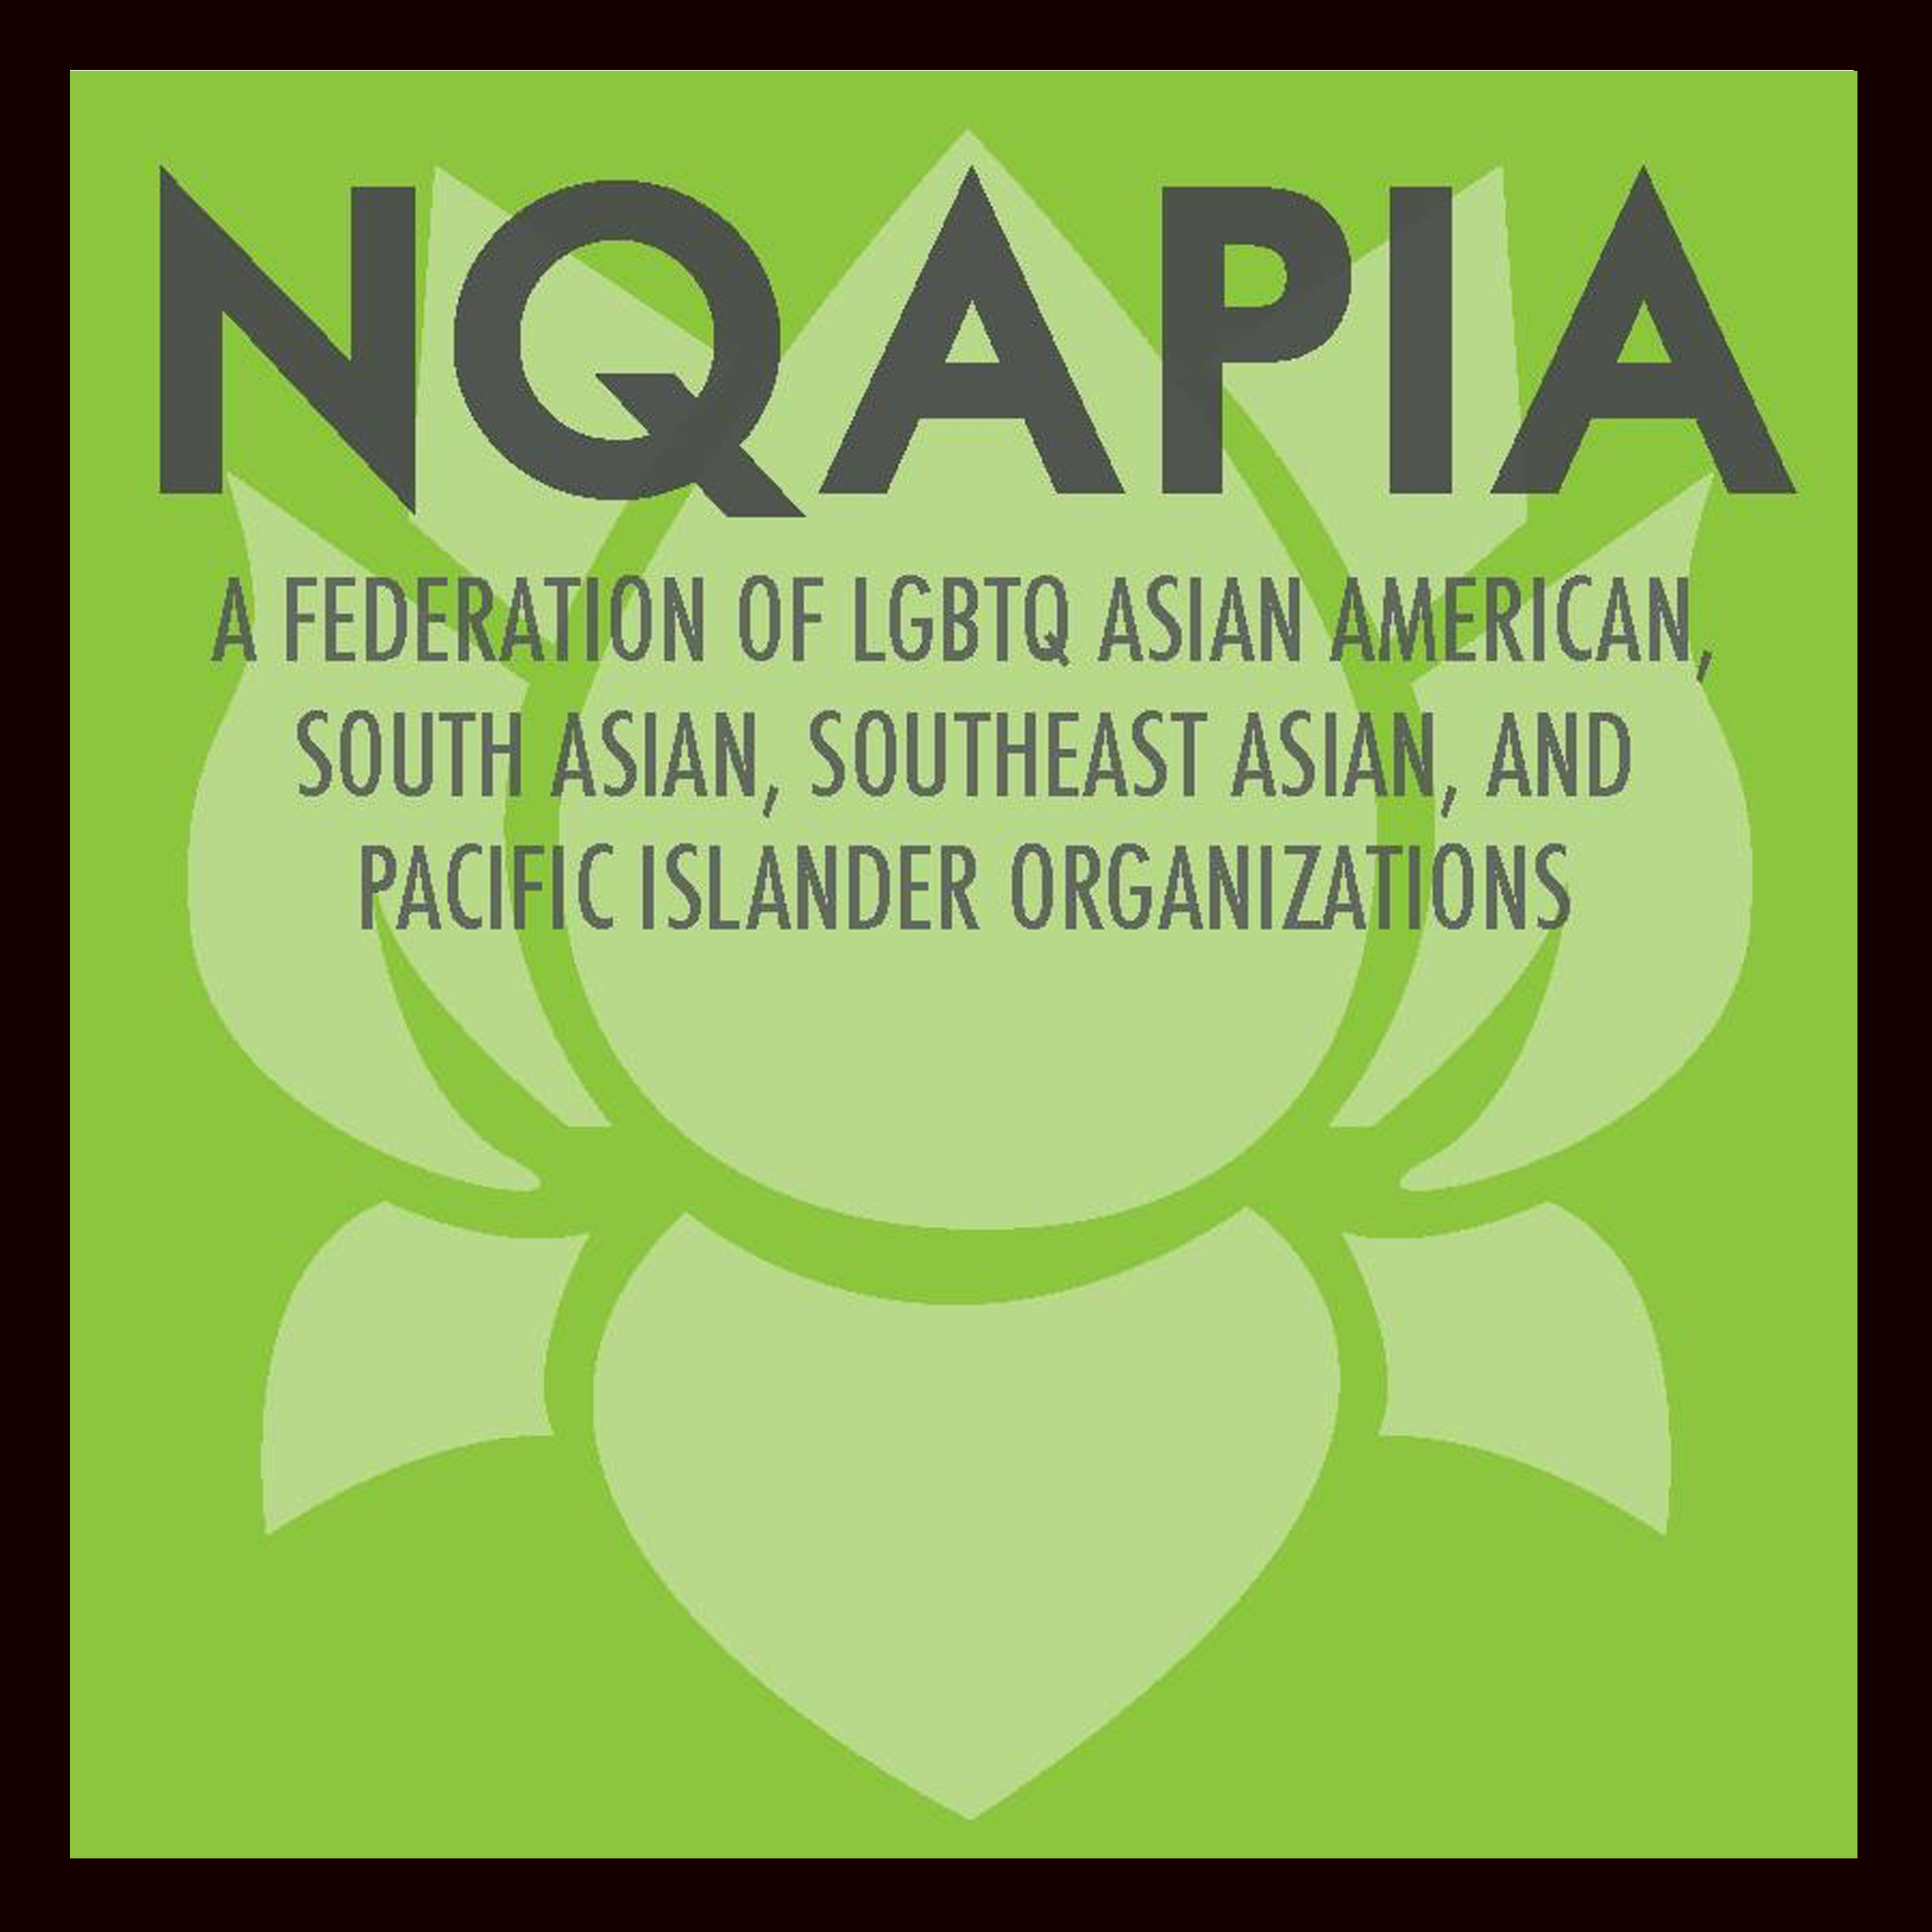 nqapia- a federation of lgbtq asian american, south asian orgs